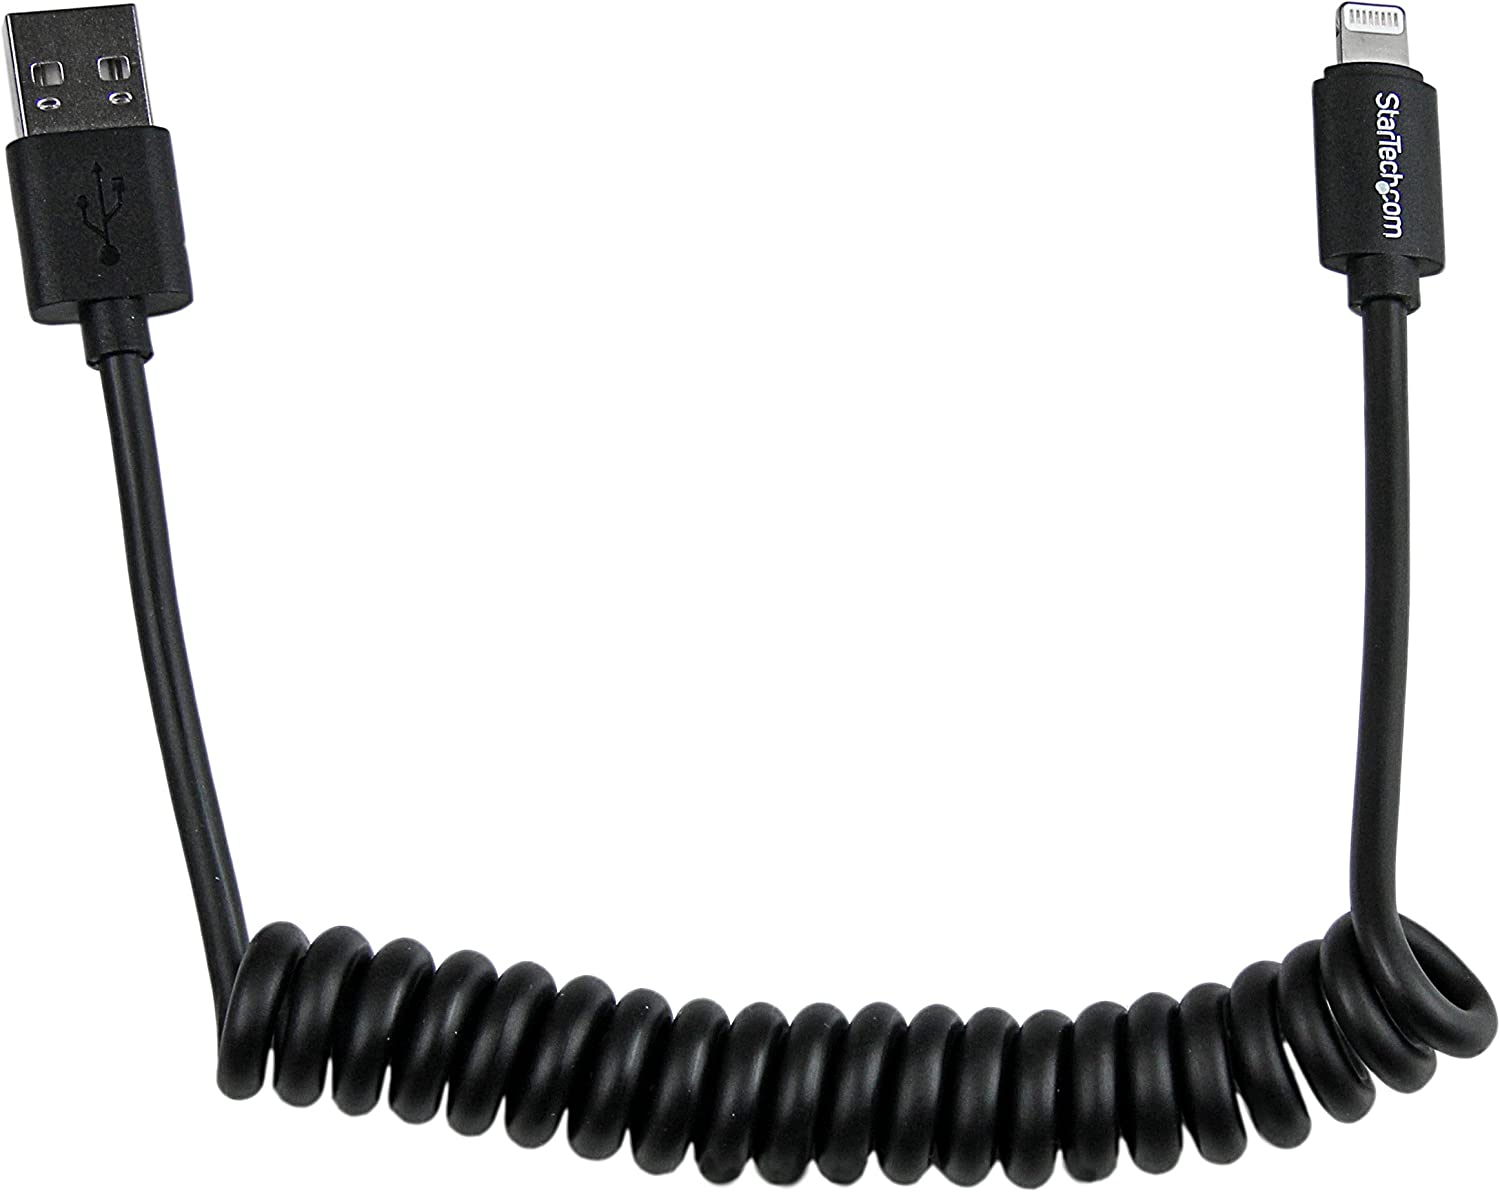 StarTech.com 0.6m 2ft Coiled Black Apple 8-pin Lightning to USB Cable for iPhone iPod iPad - Coiled Lightning Cable - Charge & Sync - 60cm (USBCLT60CMB)